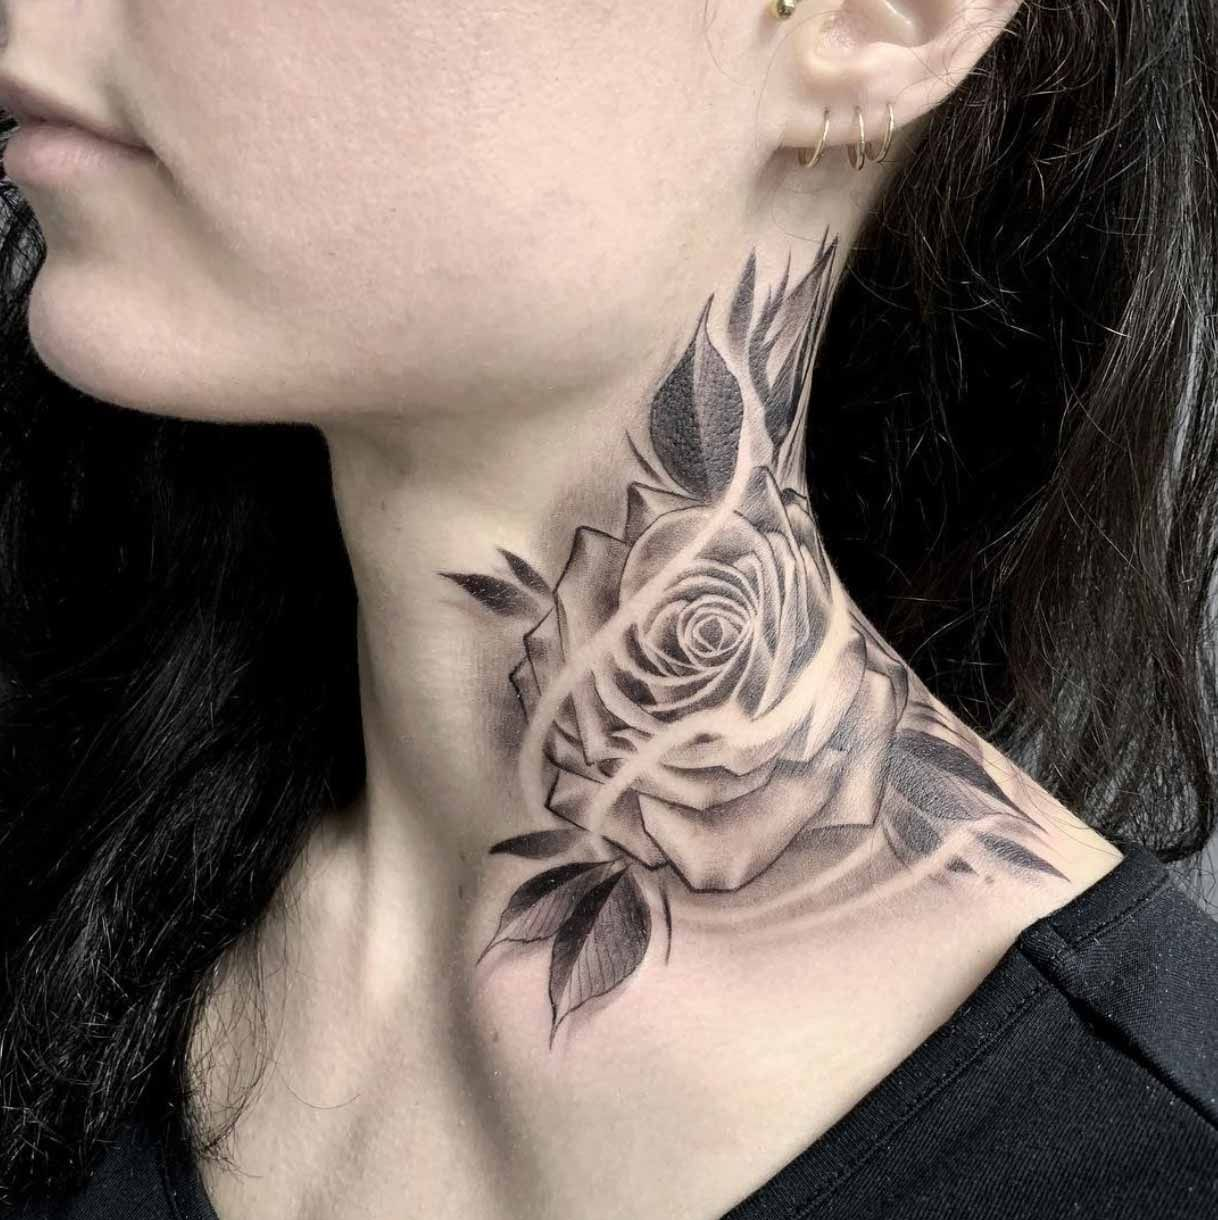 63 Creative Neck Tattoos For Women Page 1 Of 16 Neck Tattoos Women Side Neck Tattoos Women Bac In 2020 Neck Tattoos Women Side Neck Tattoo Neck Tattoo For Guys